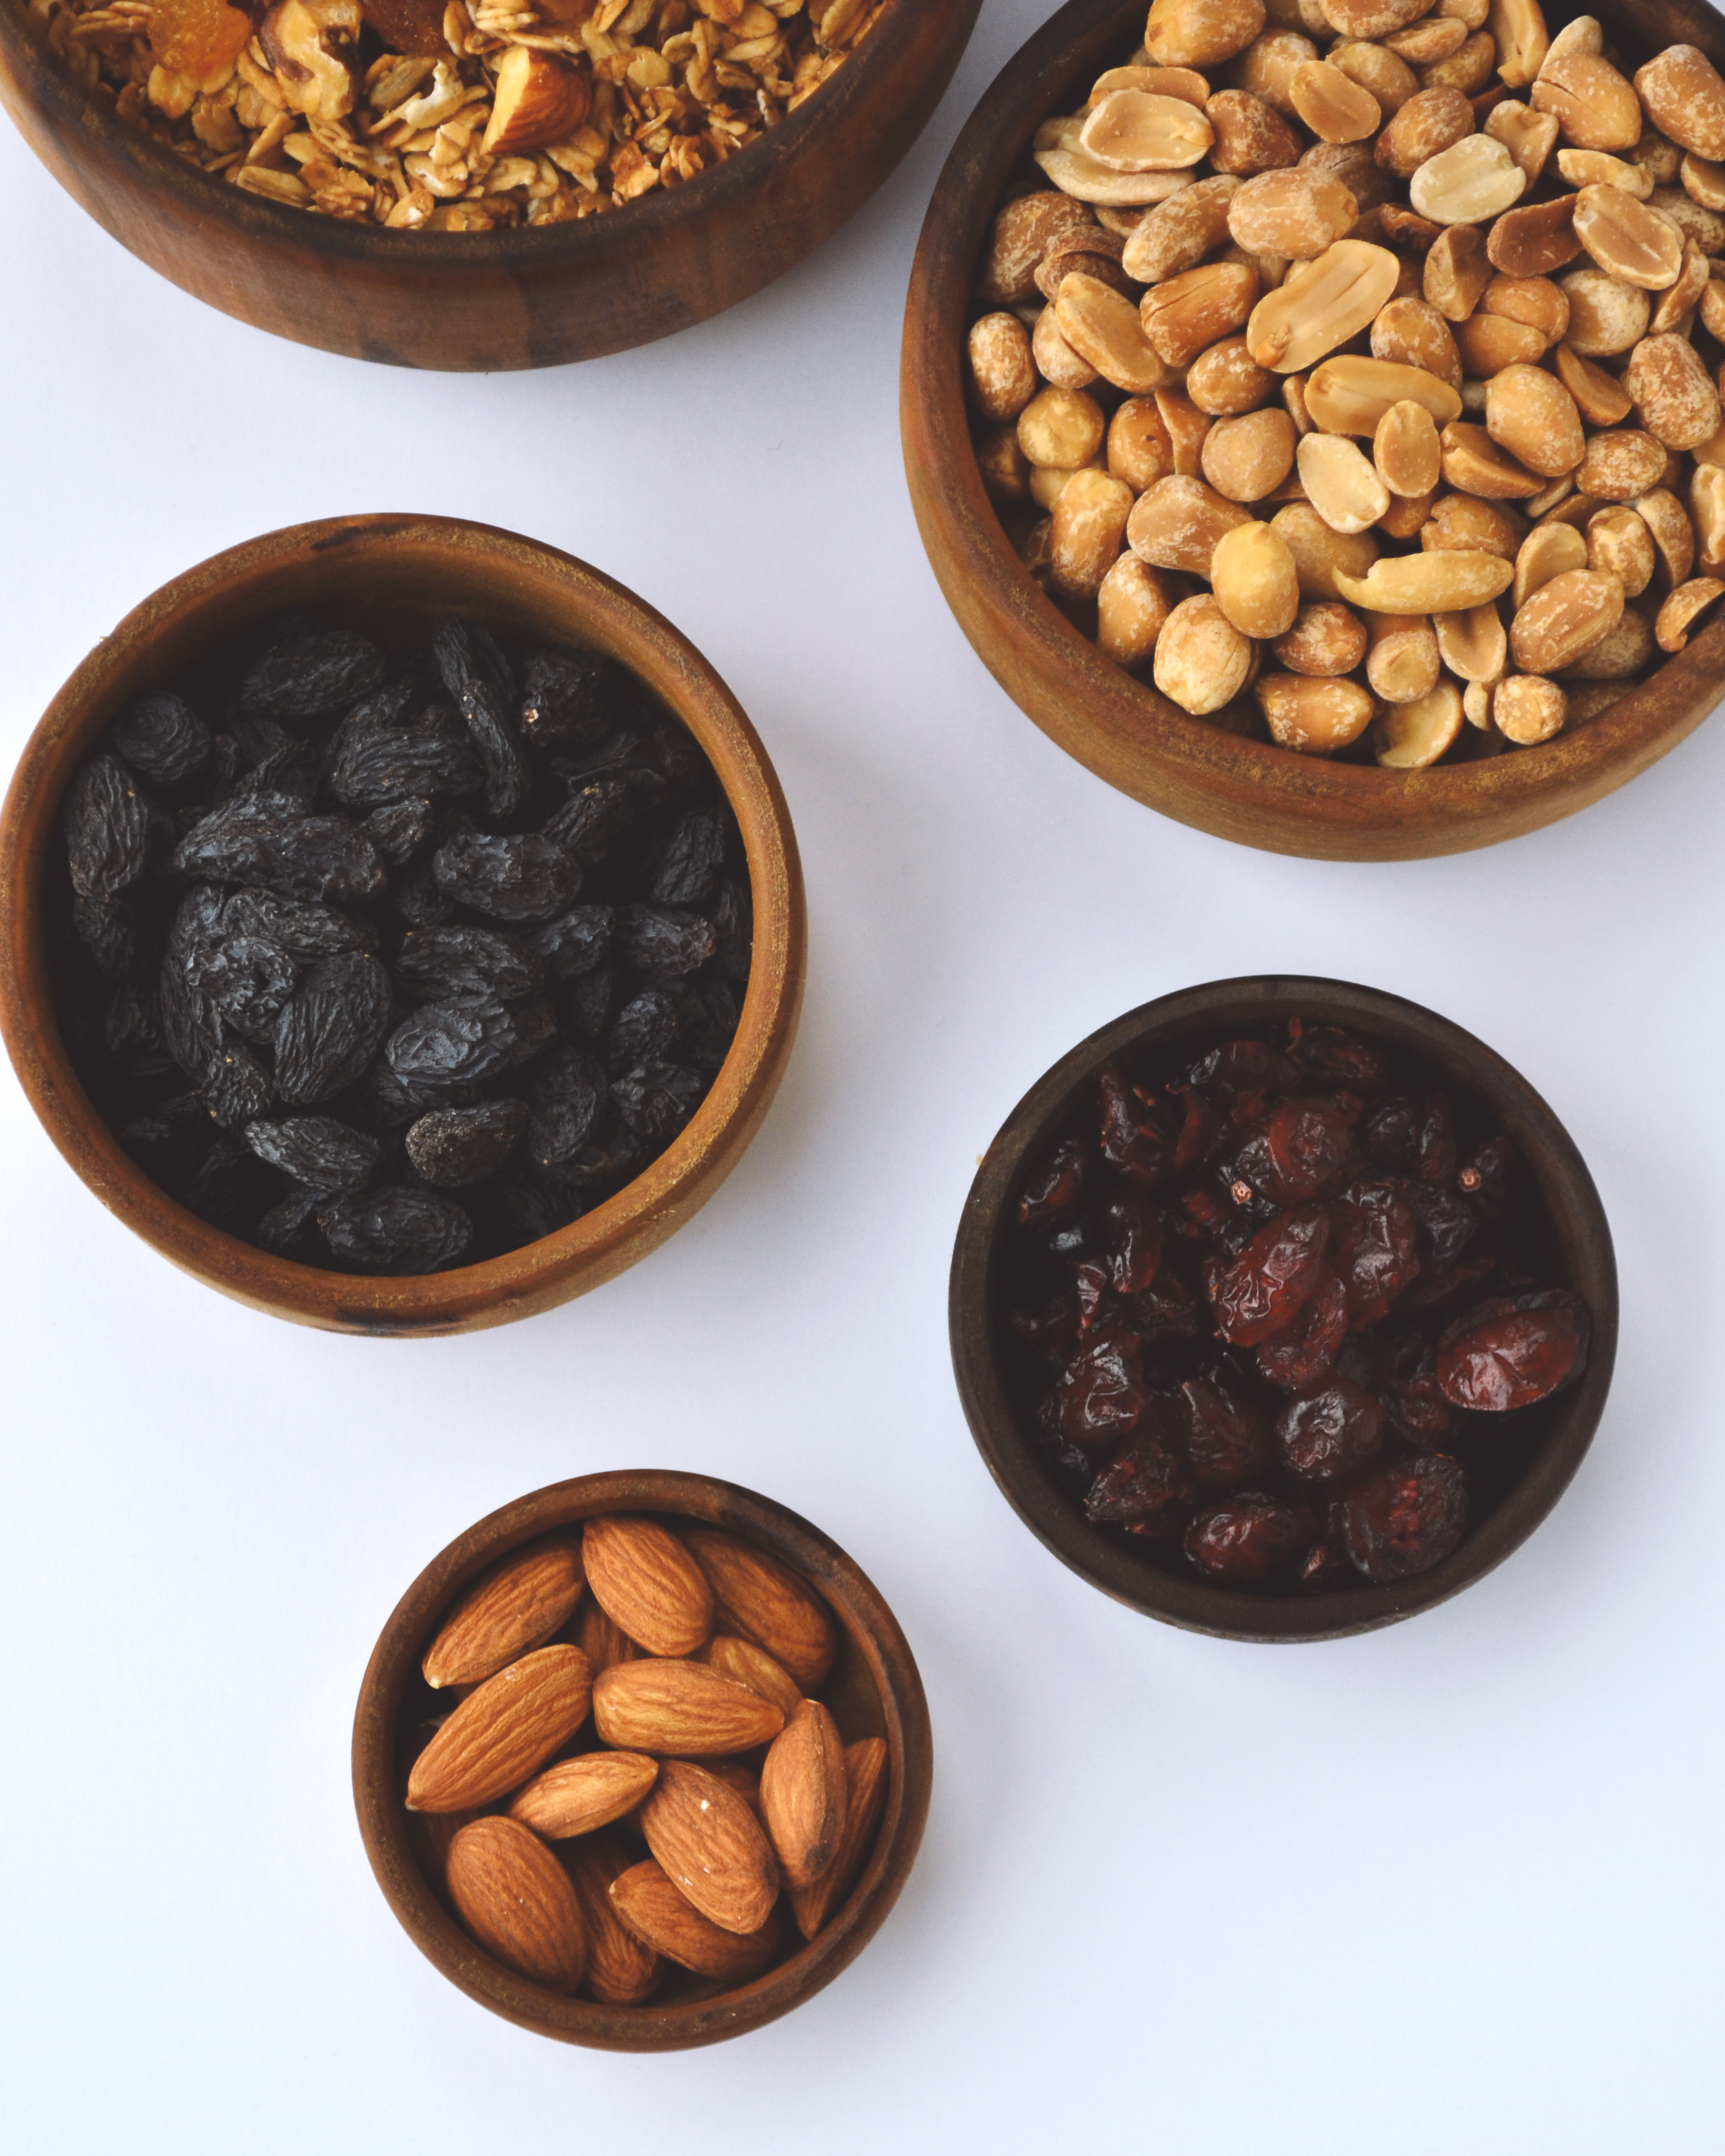 Nuts and Seeds - Make sure your trail mix isn't filled with added sugars and unnecessary oils. Same rules apply for nut butters (peanut butter, almond butter, cashew butter, etc)-watch out for unnecessary added ingredients.